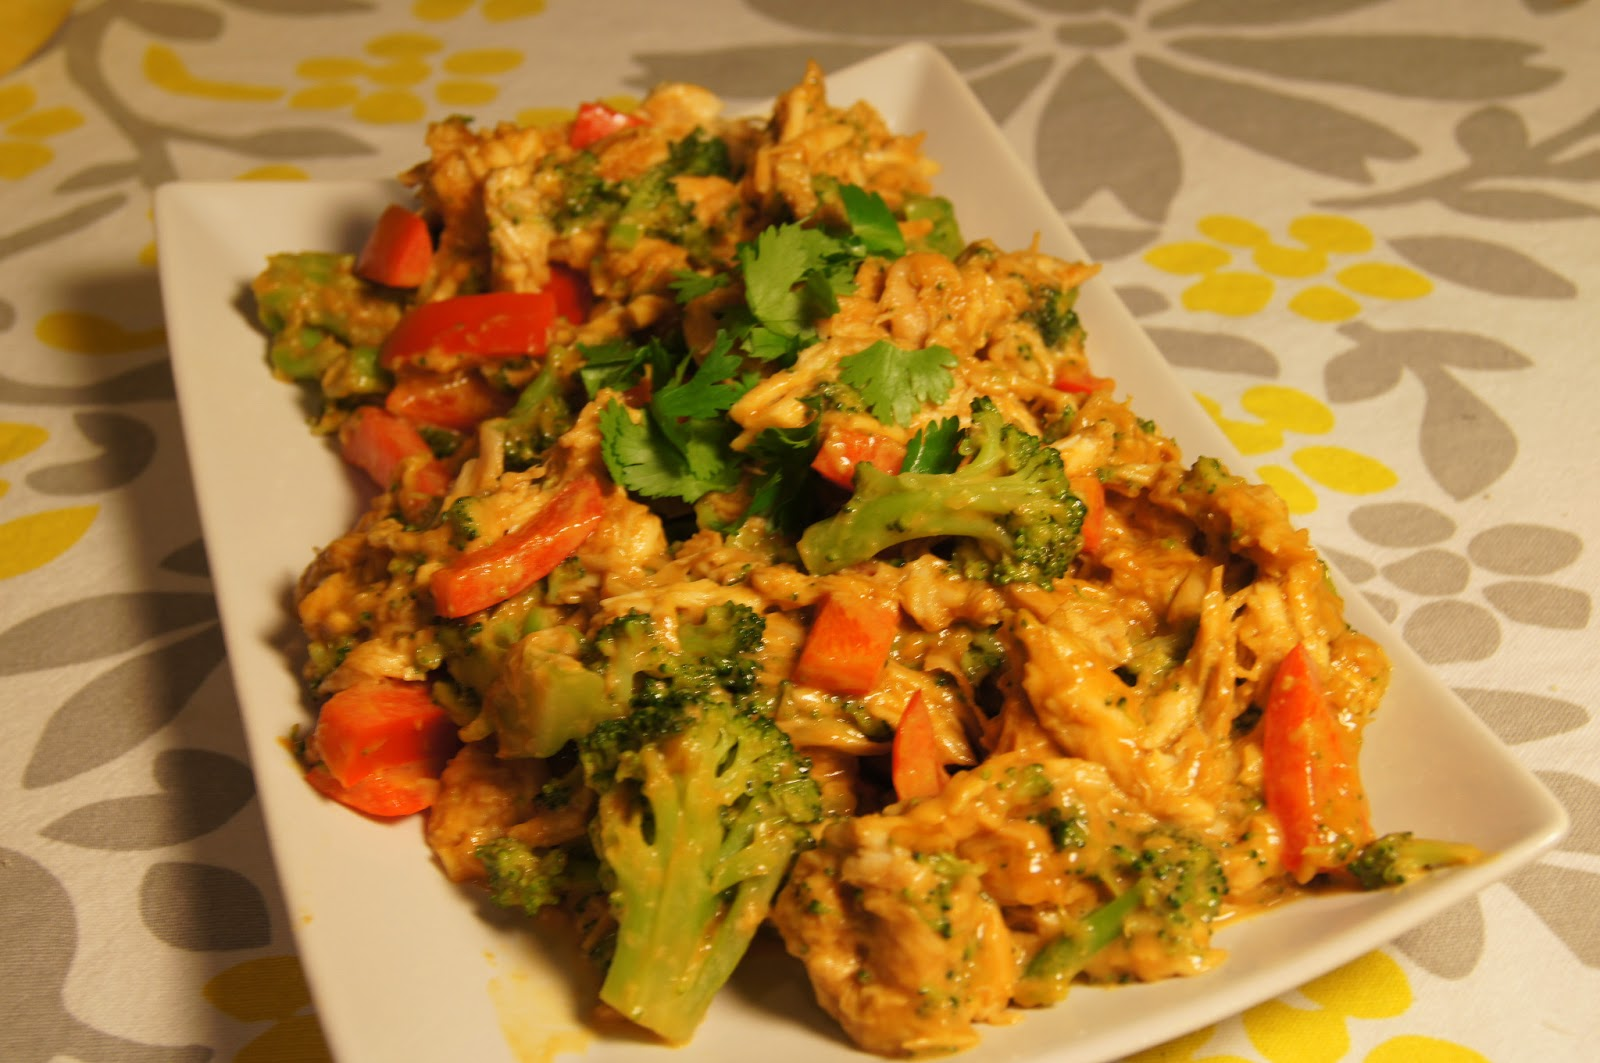 ... : Chicken, Broccoli, and Red Bell Peppers with Peanut Butter Dressing